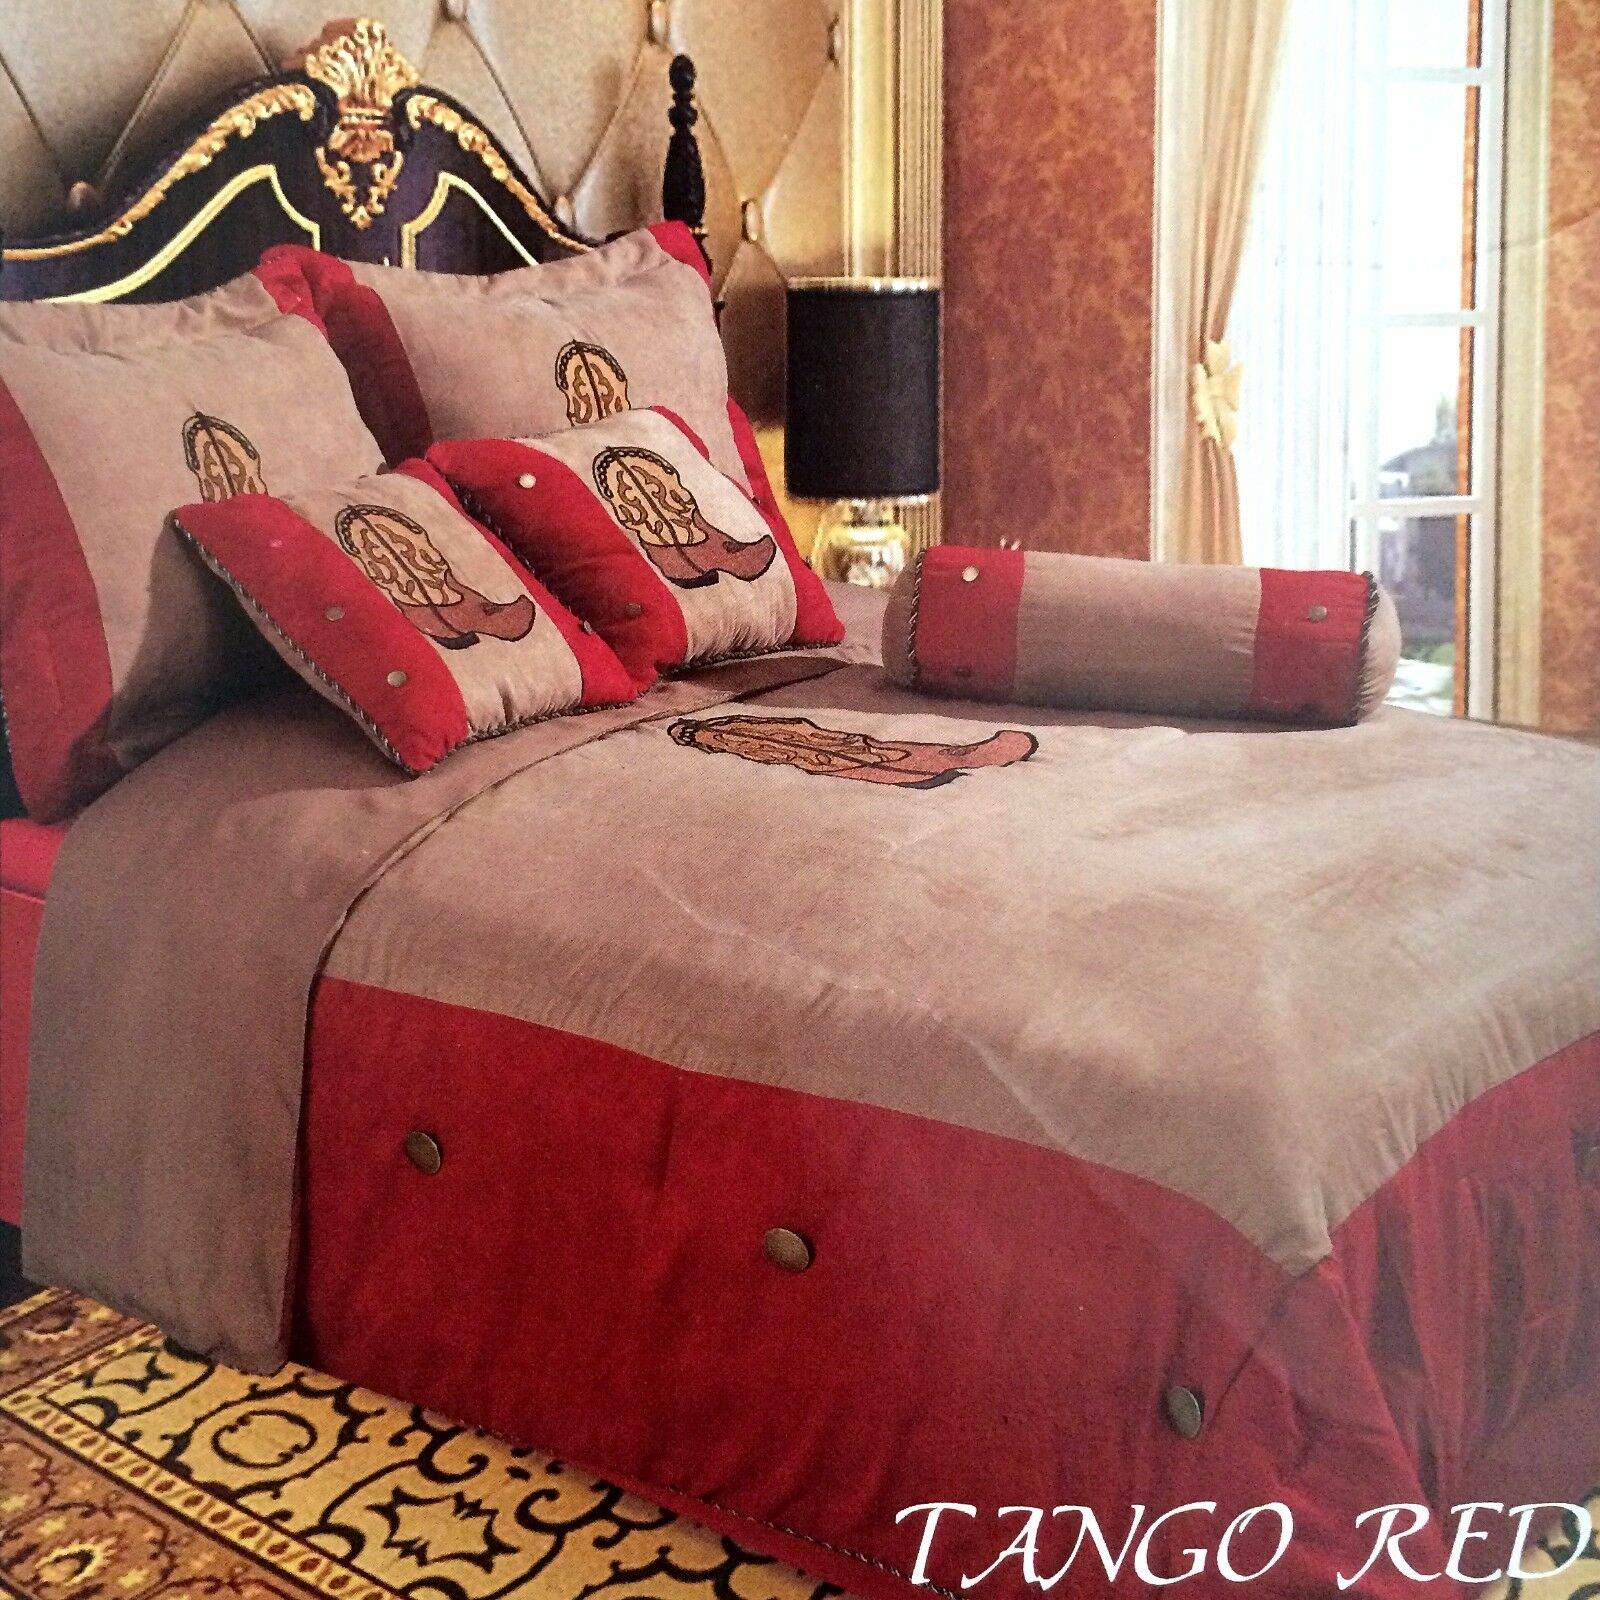 Embroidery Printed Texas Western Boots Luxury Comforter Suede 7 Pieces Set Queen